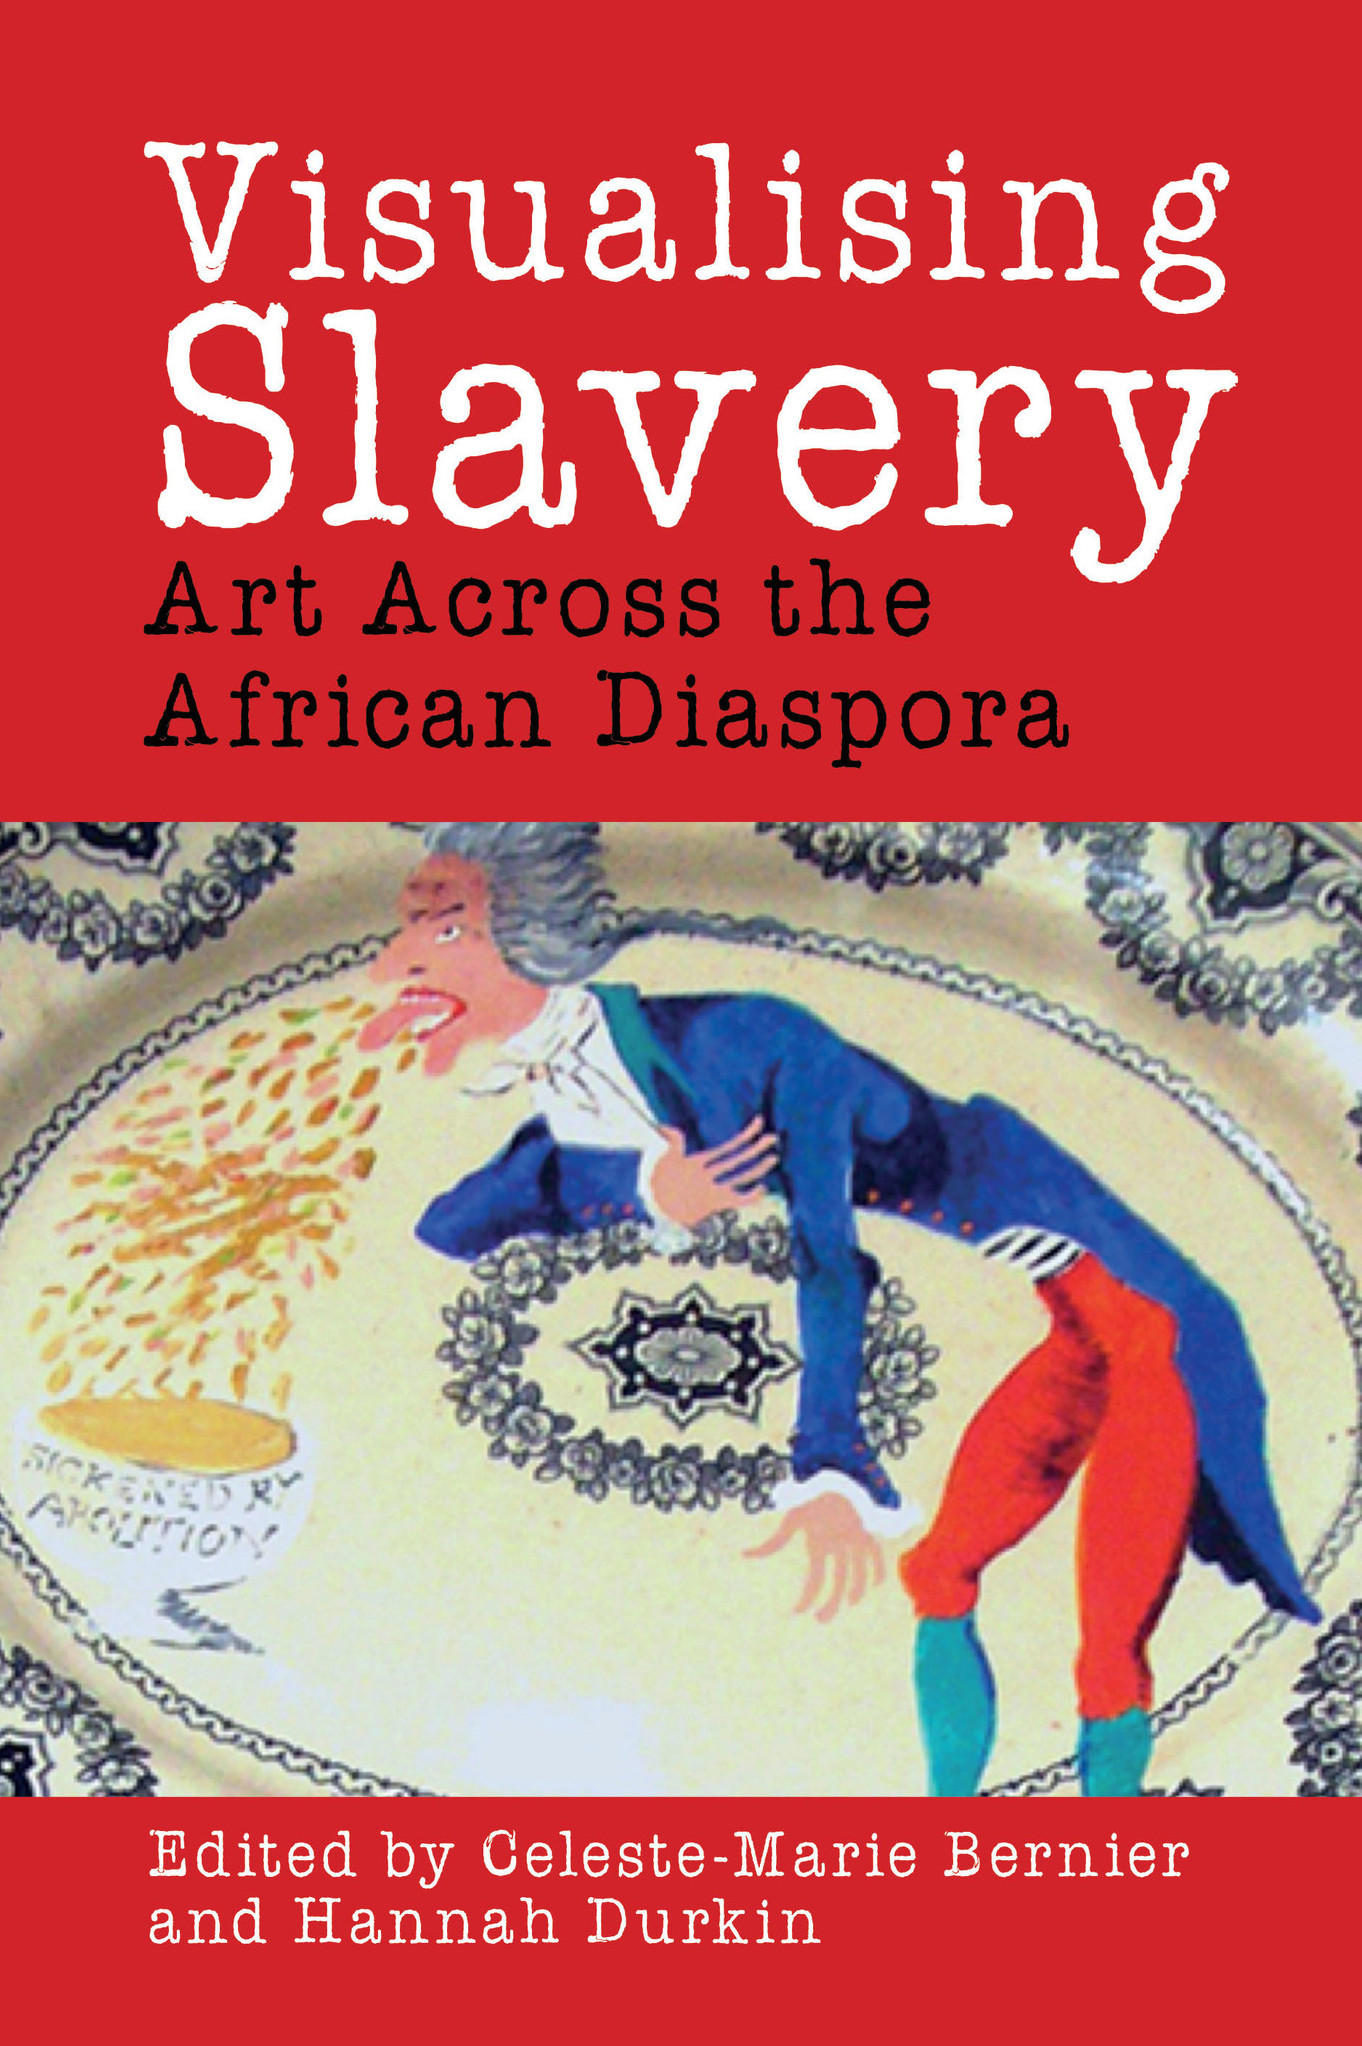 Visualising_Slavery_book_cover.jpeg